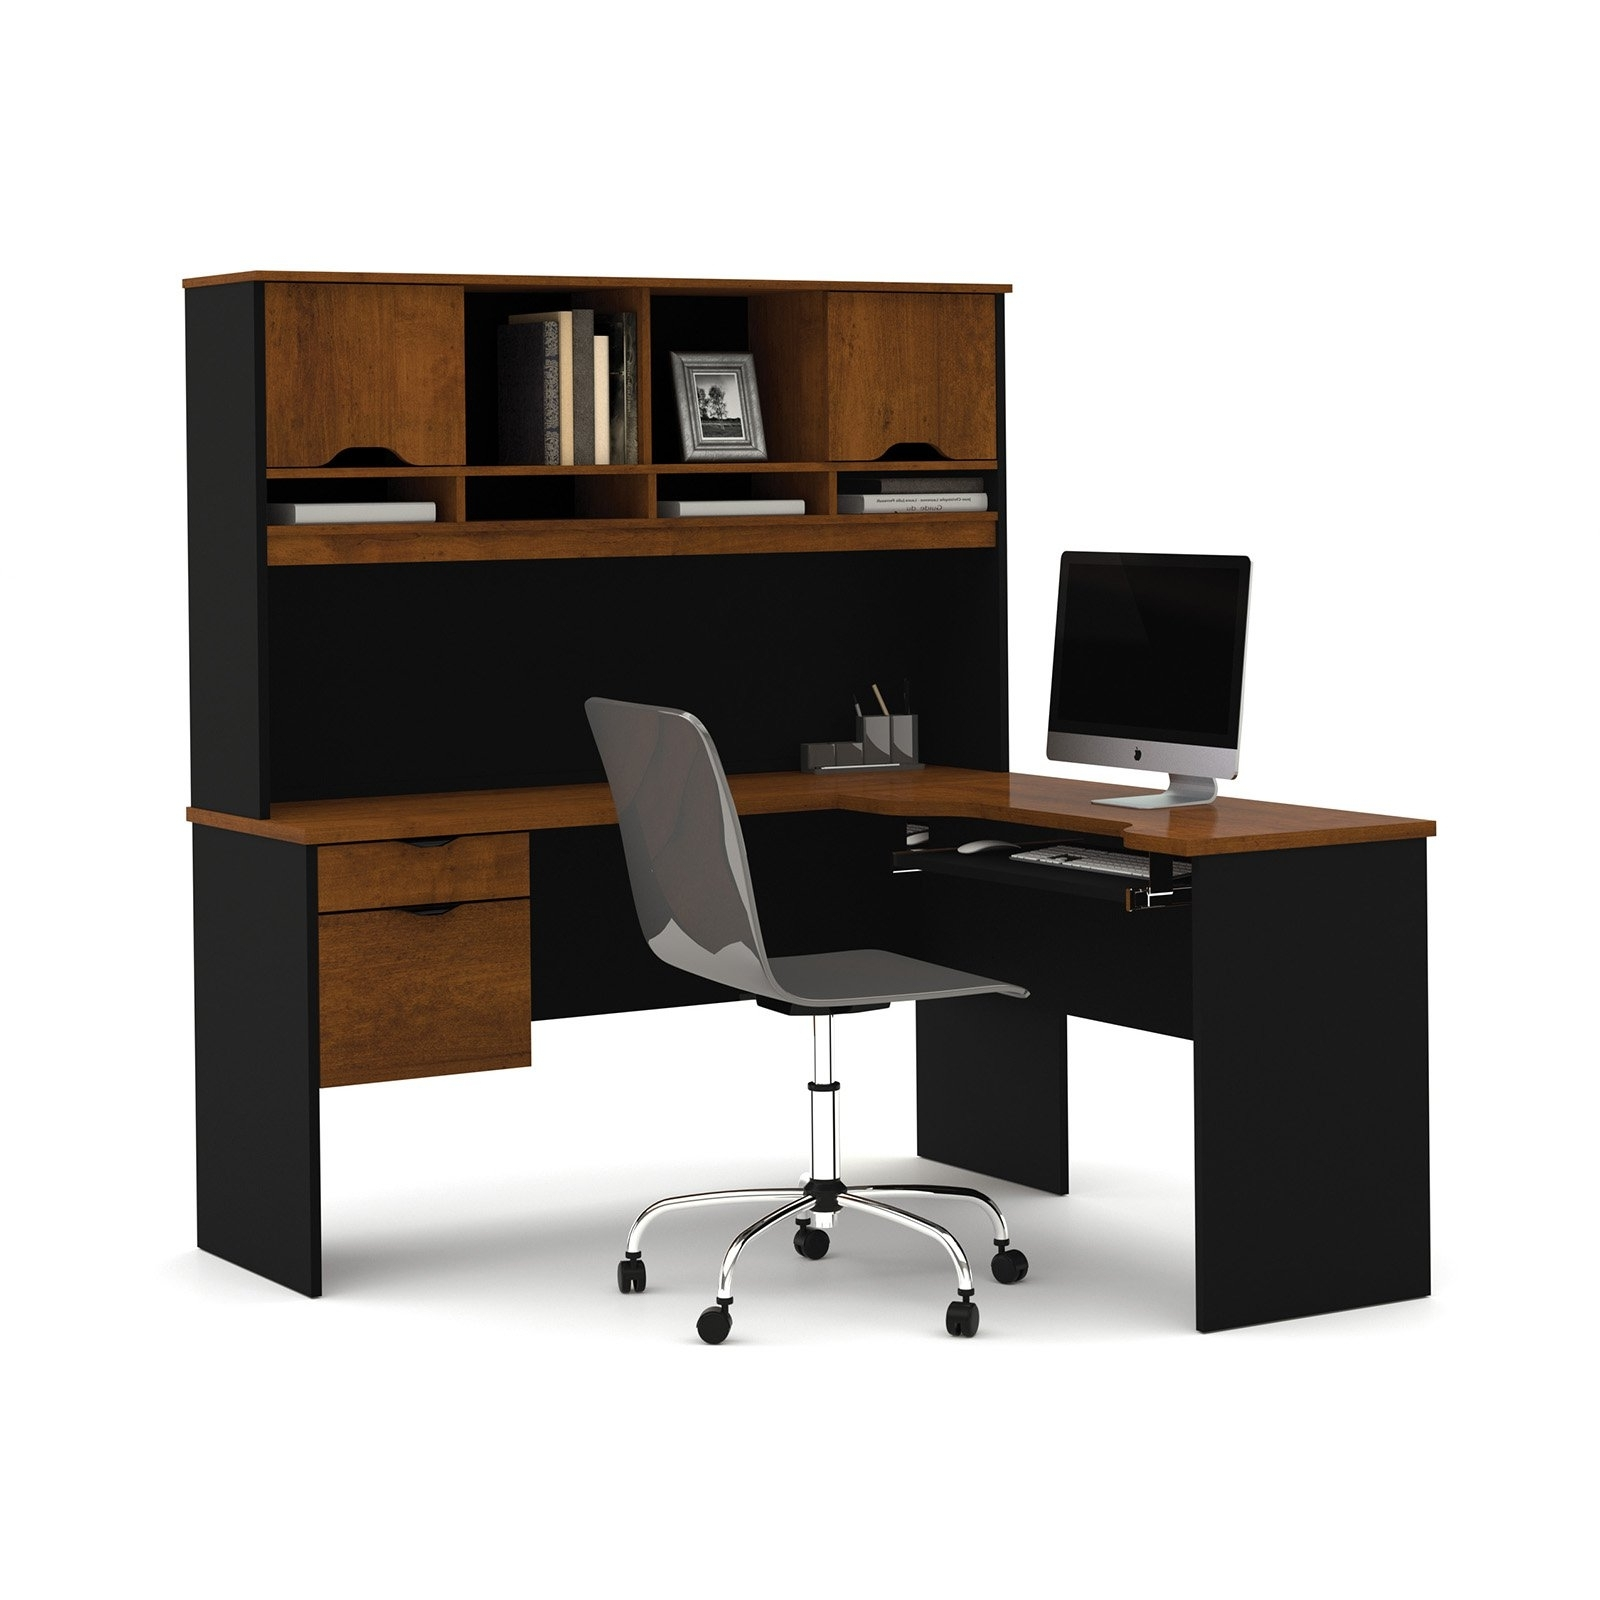 2018 Bestar Innova L Shape Computer Desk – Walmart With Brown Computer Desks (View 1 of 20)